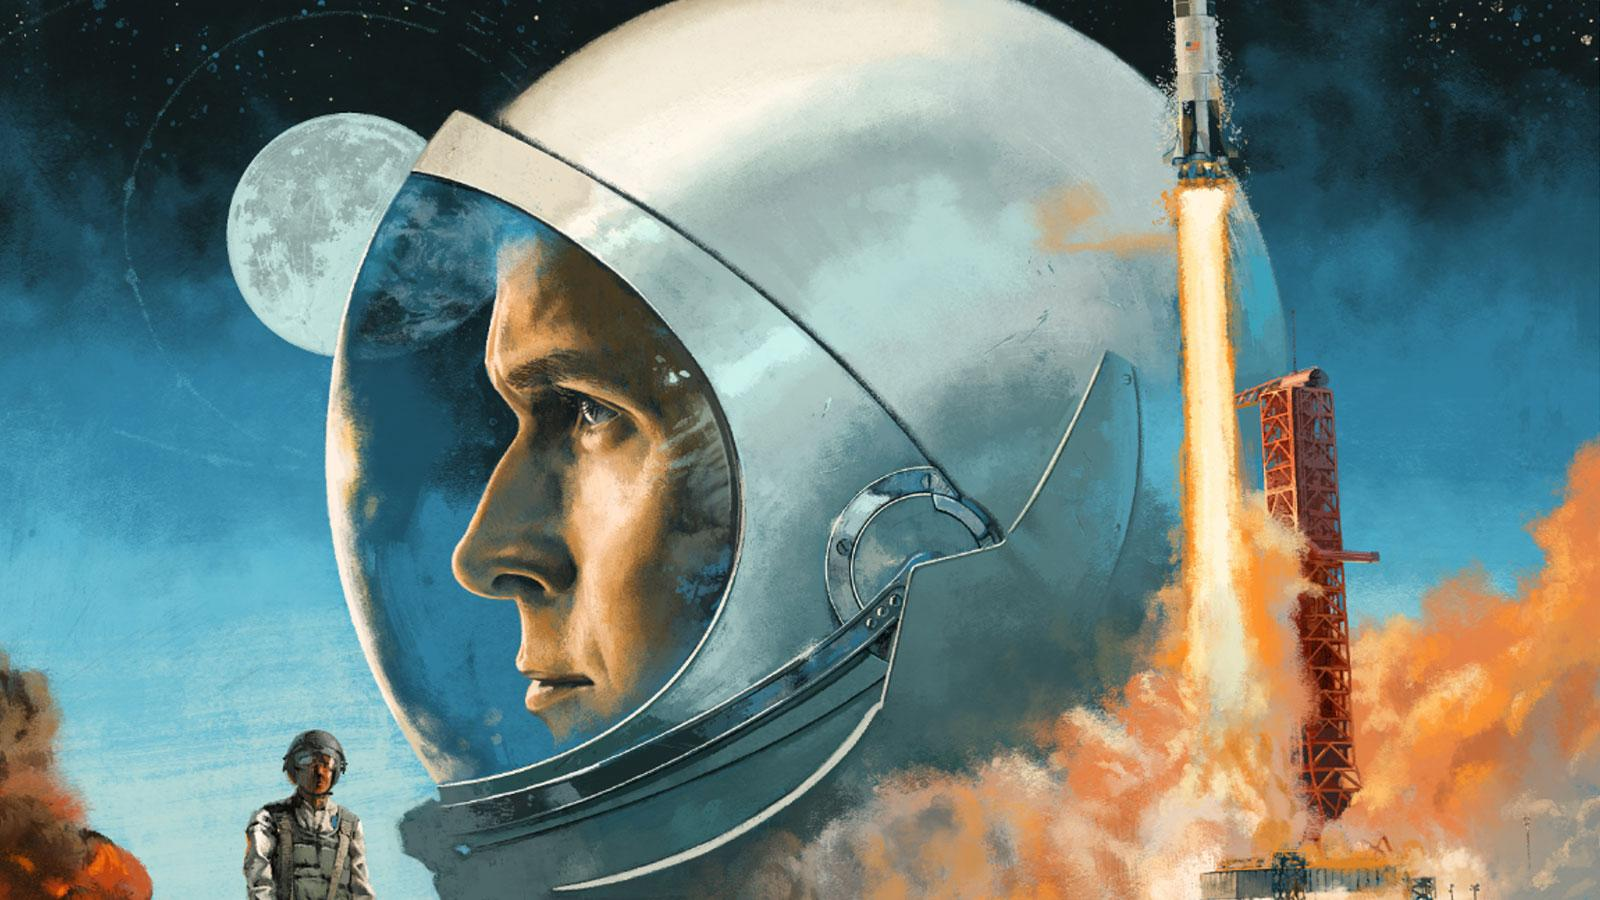 This First Man Soundtrack Vinyl Cover Art Is Exquisitely